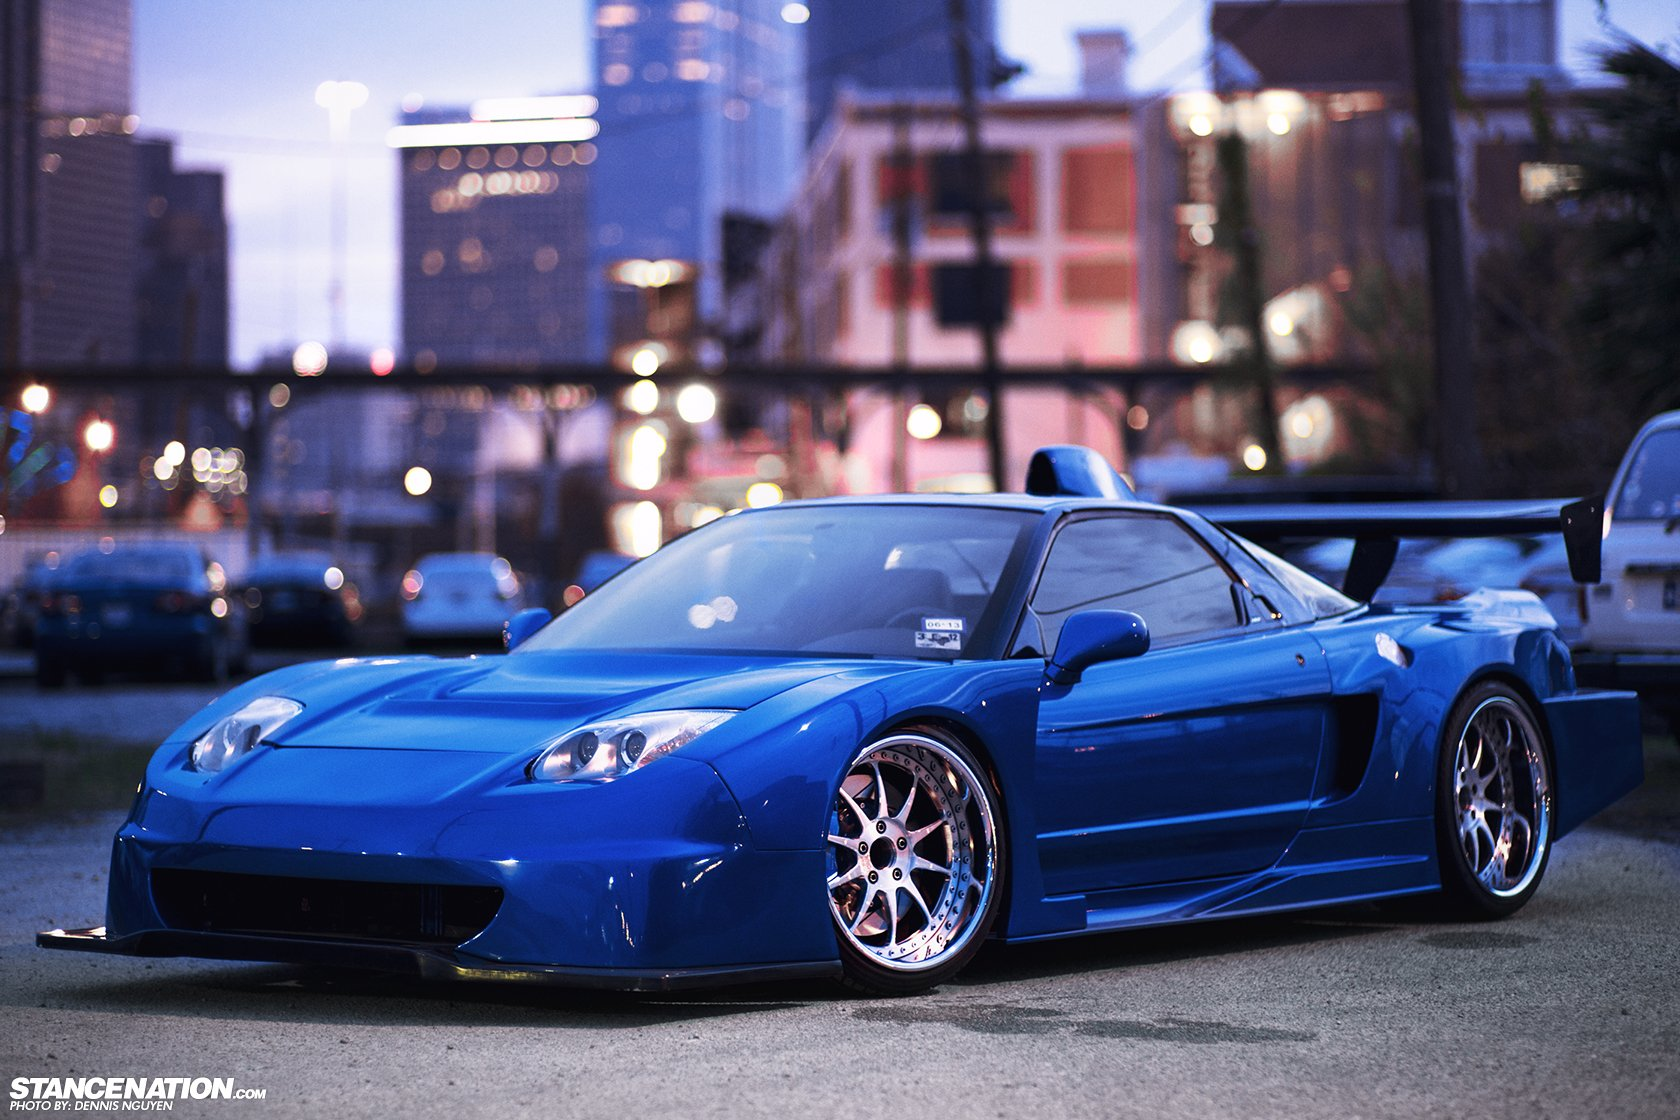 acura nsx images #6